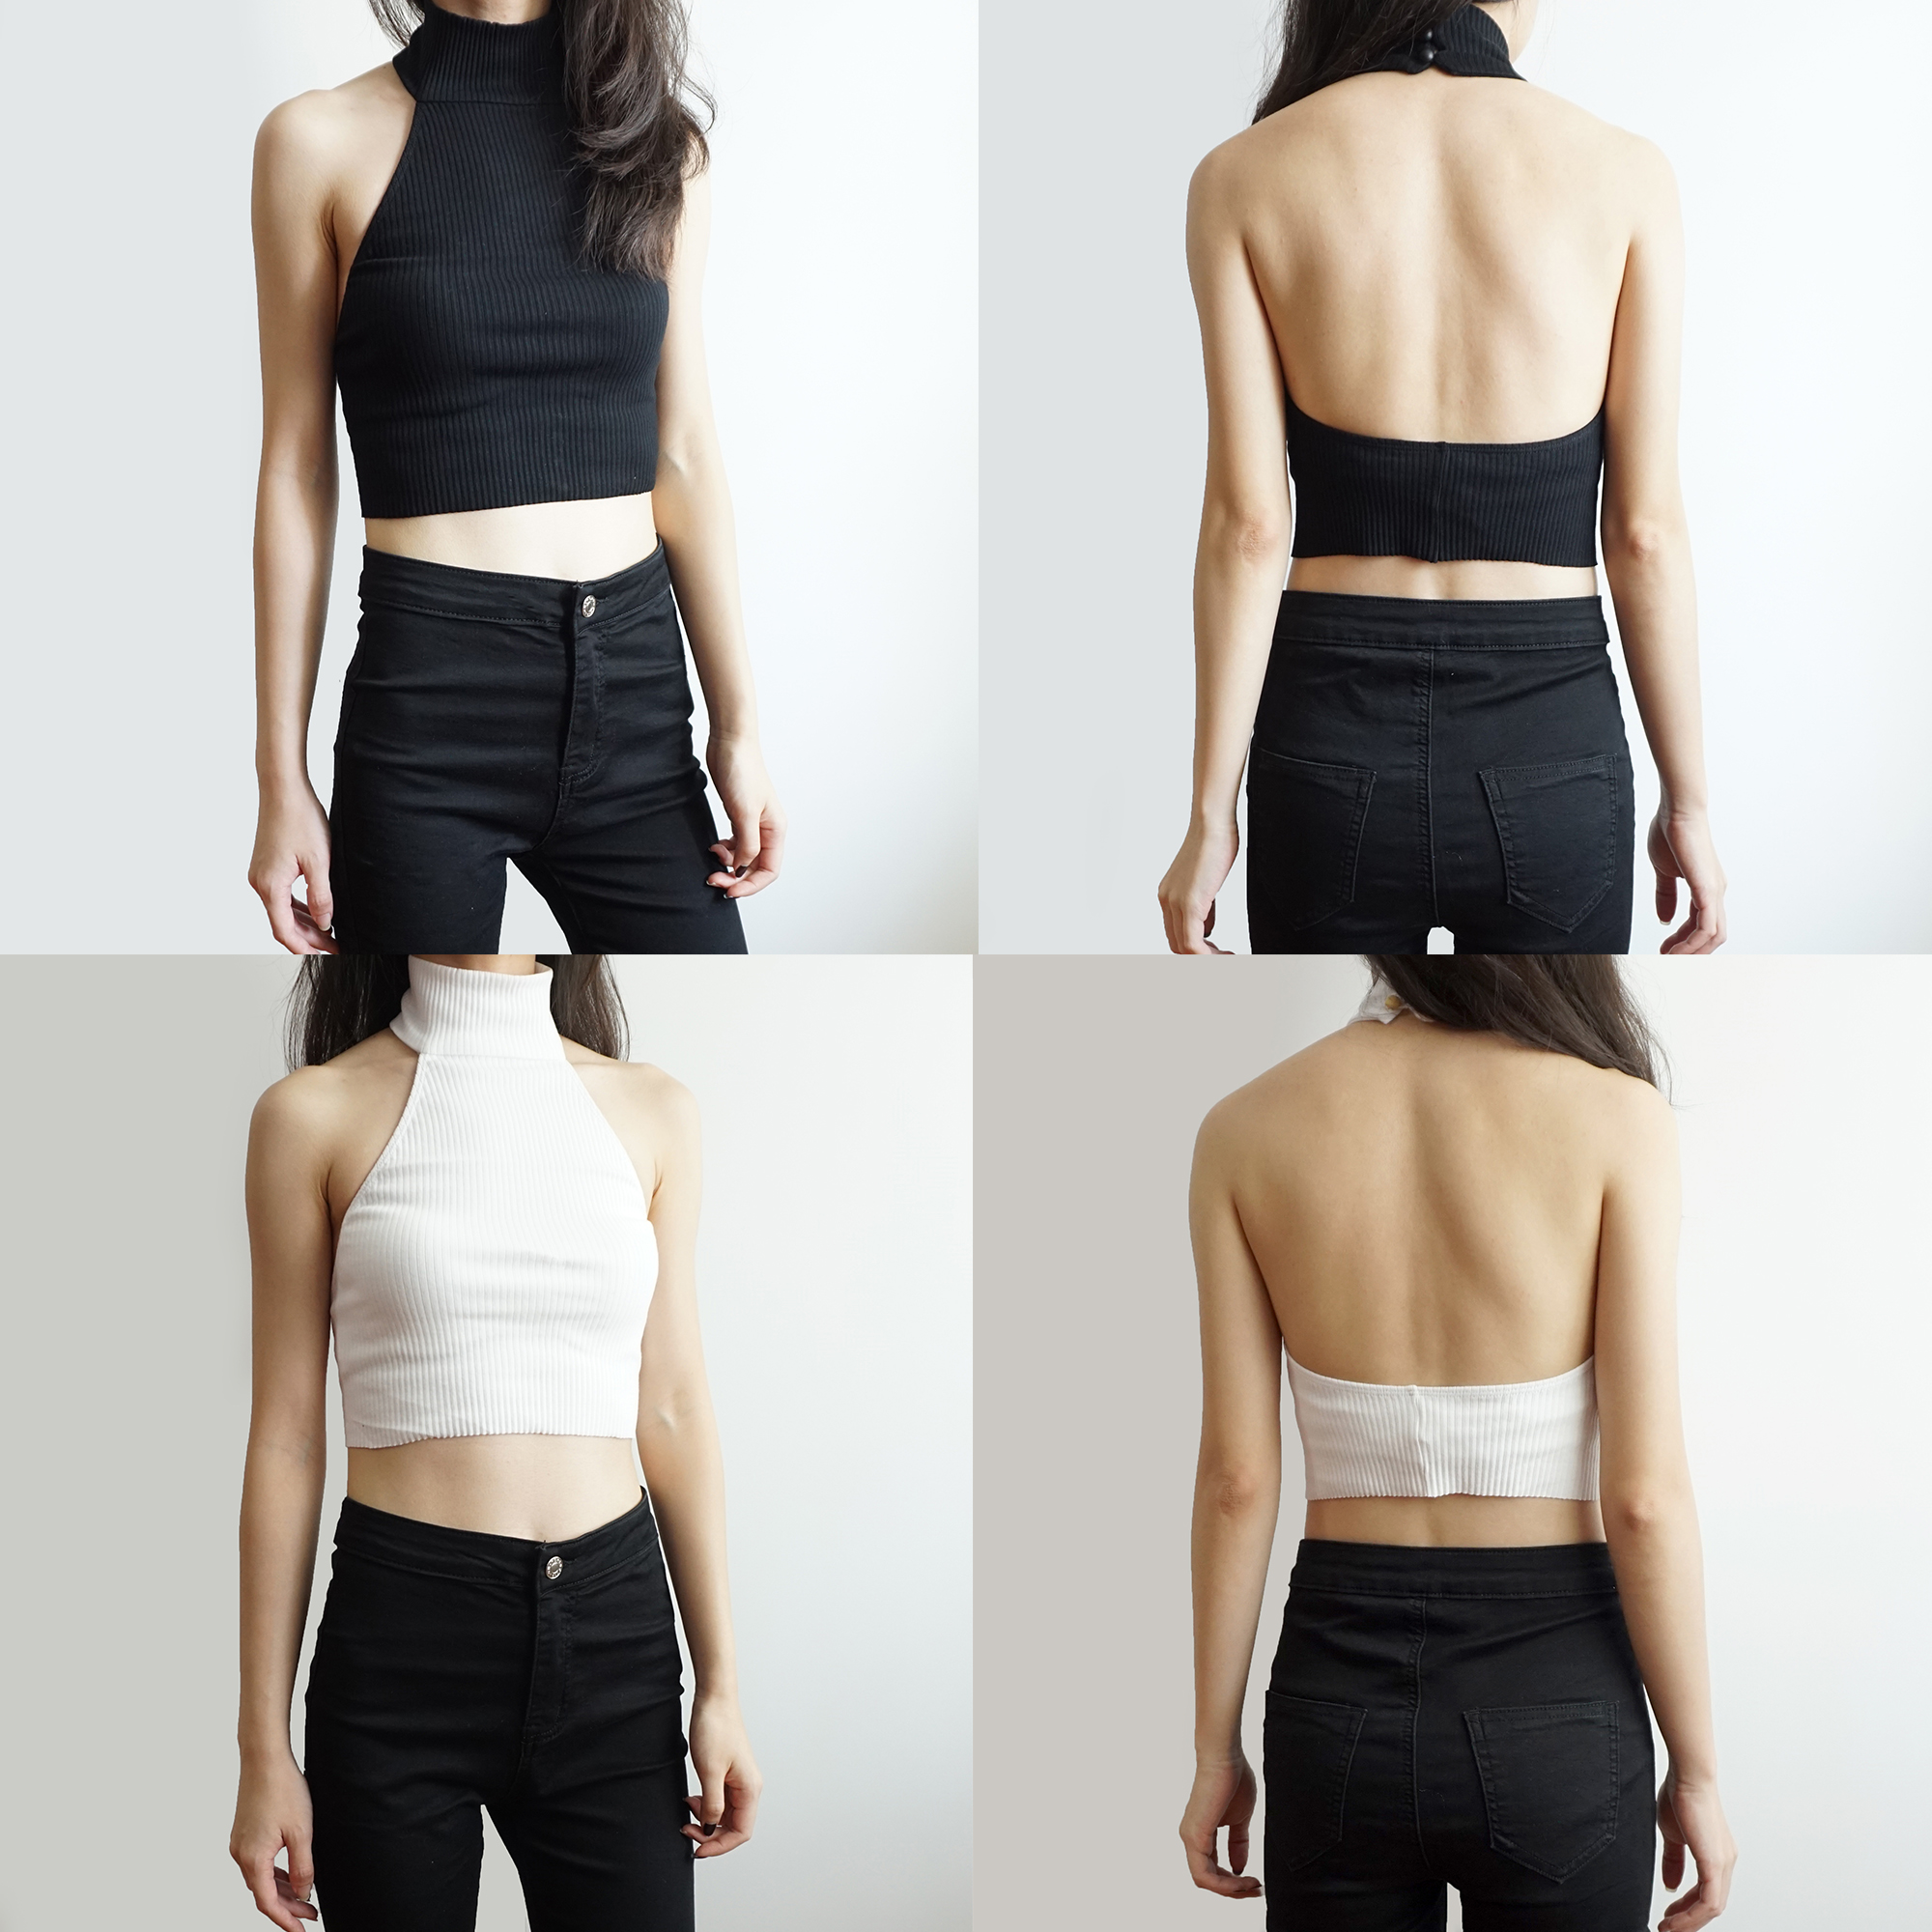 Turtleneck Halter Crop Top 5 Colors 183 Megoosta Fashion 183 Free Shipping Worldwide On All Orders